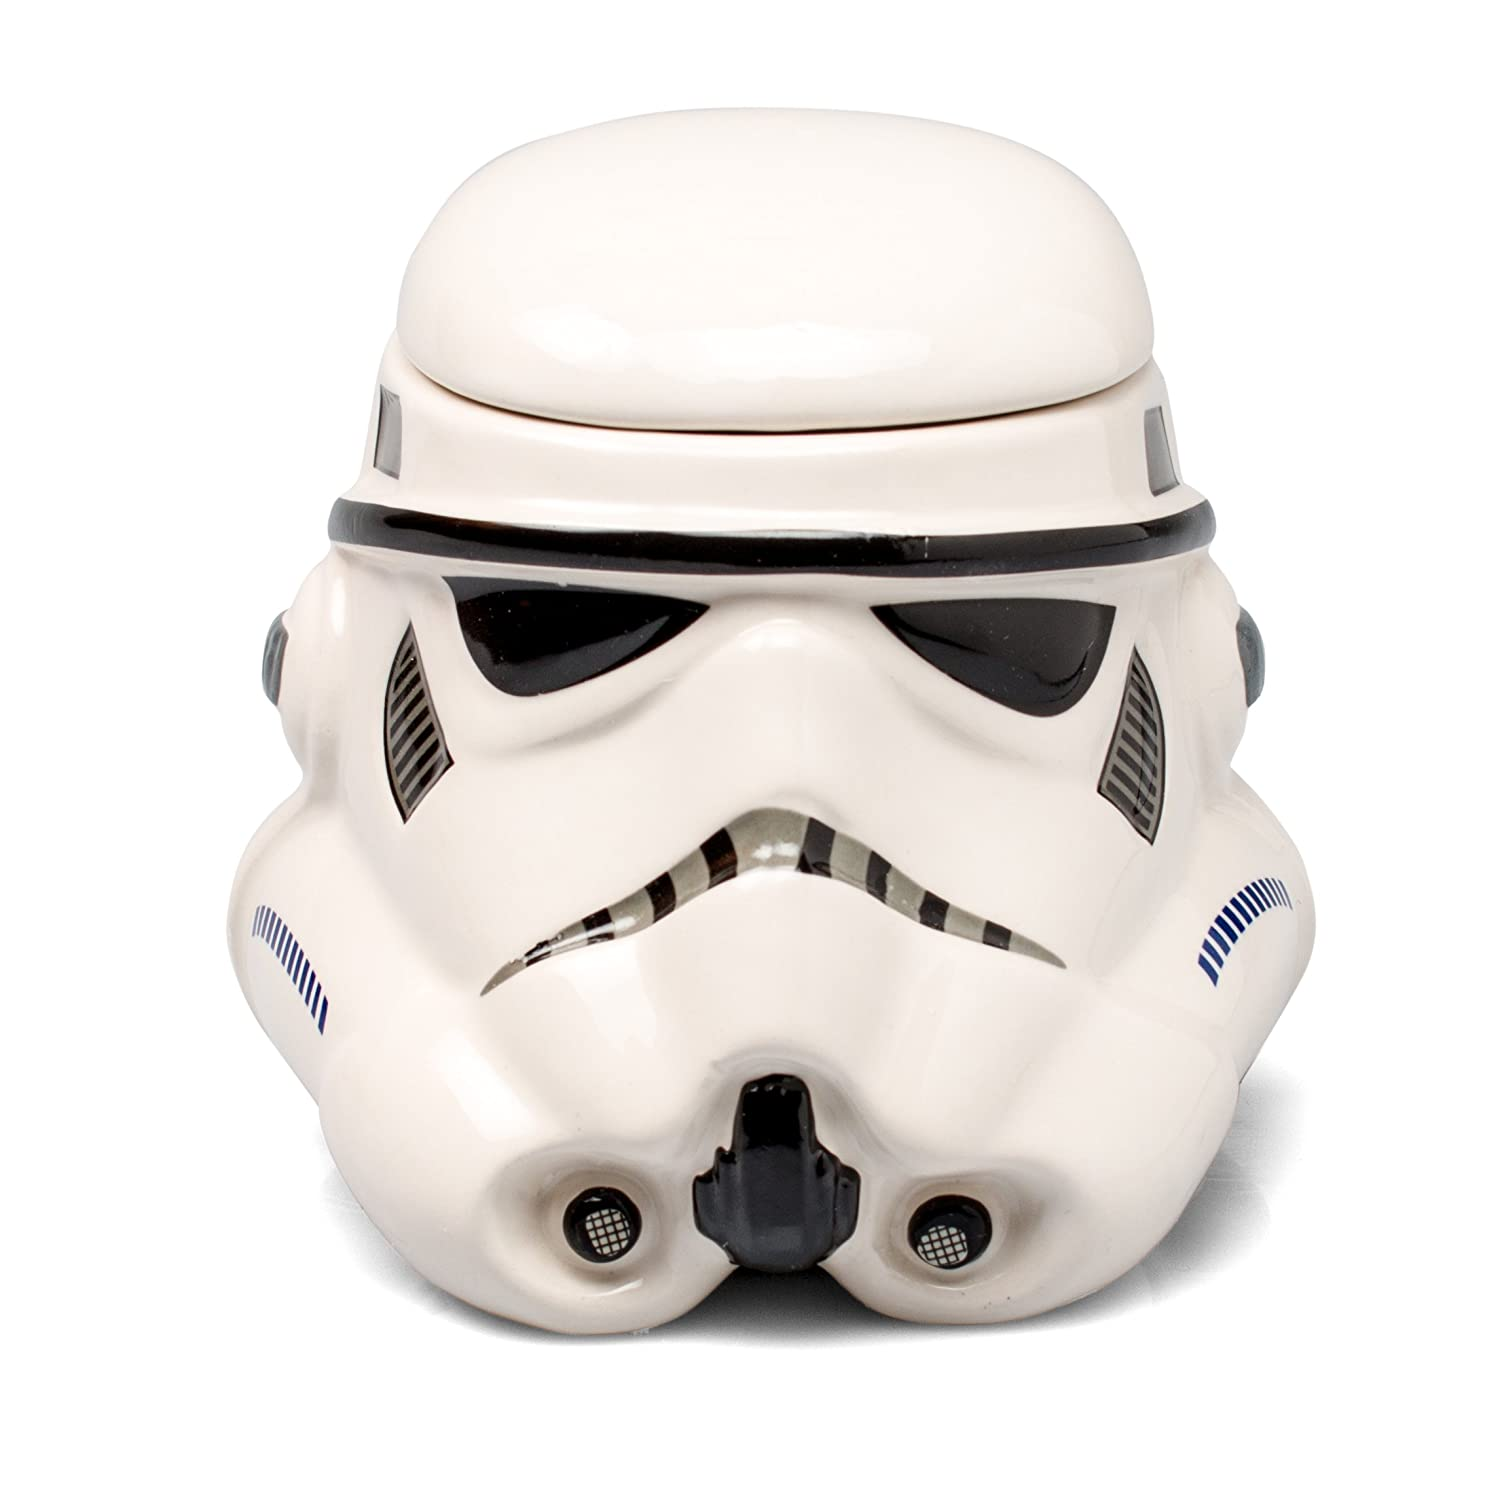 Star Wars Mug - Stormtrooper Helmet 3D Ceramic Coffee and Drink Mug with Removable Lid - 20-oz Underground Toys STAR285